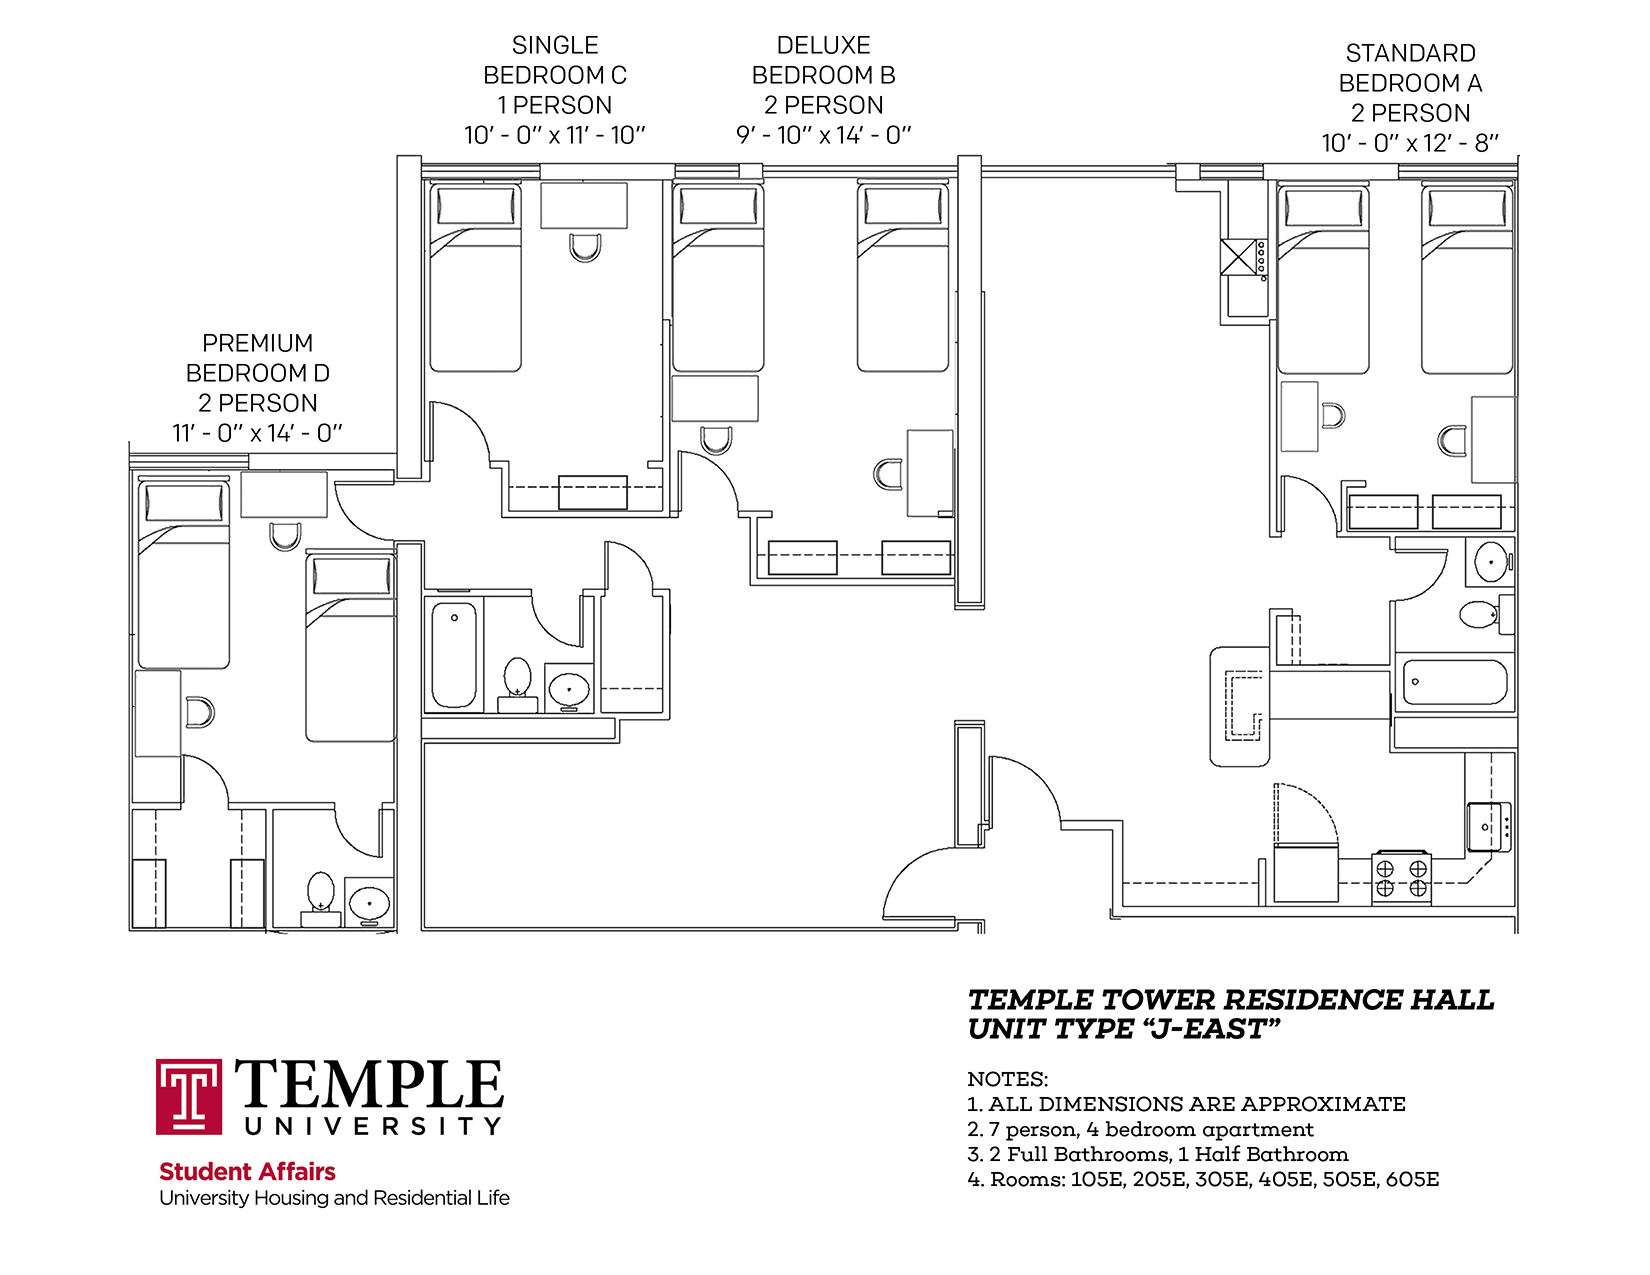 Temple Towers: Unit J East - 7 person, 4 bedroom Apartment